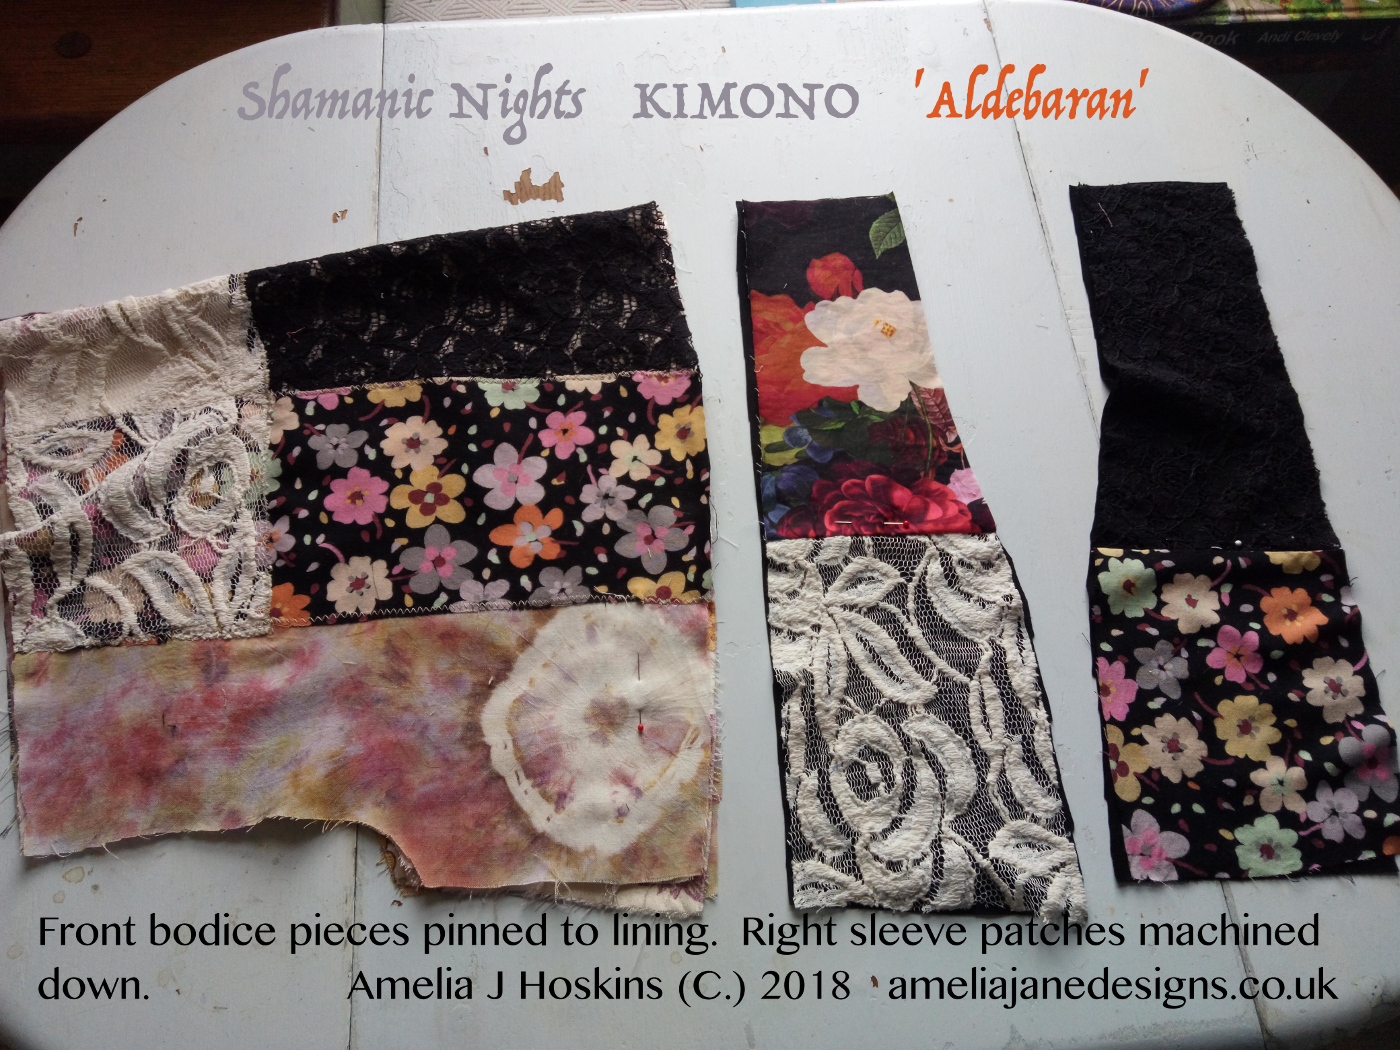 1.Front bodice pieces, pinned to lining one sleeve2018-04-07 - 002 - annotated 1400scale